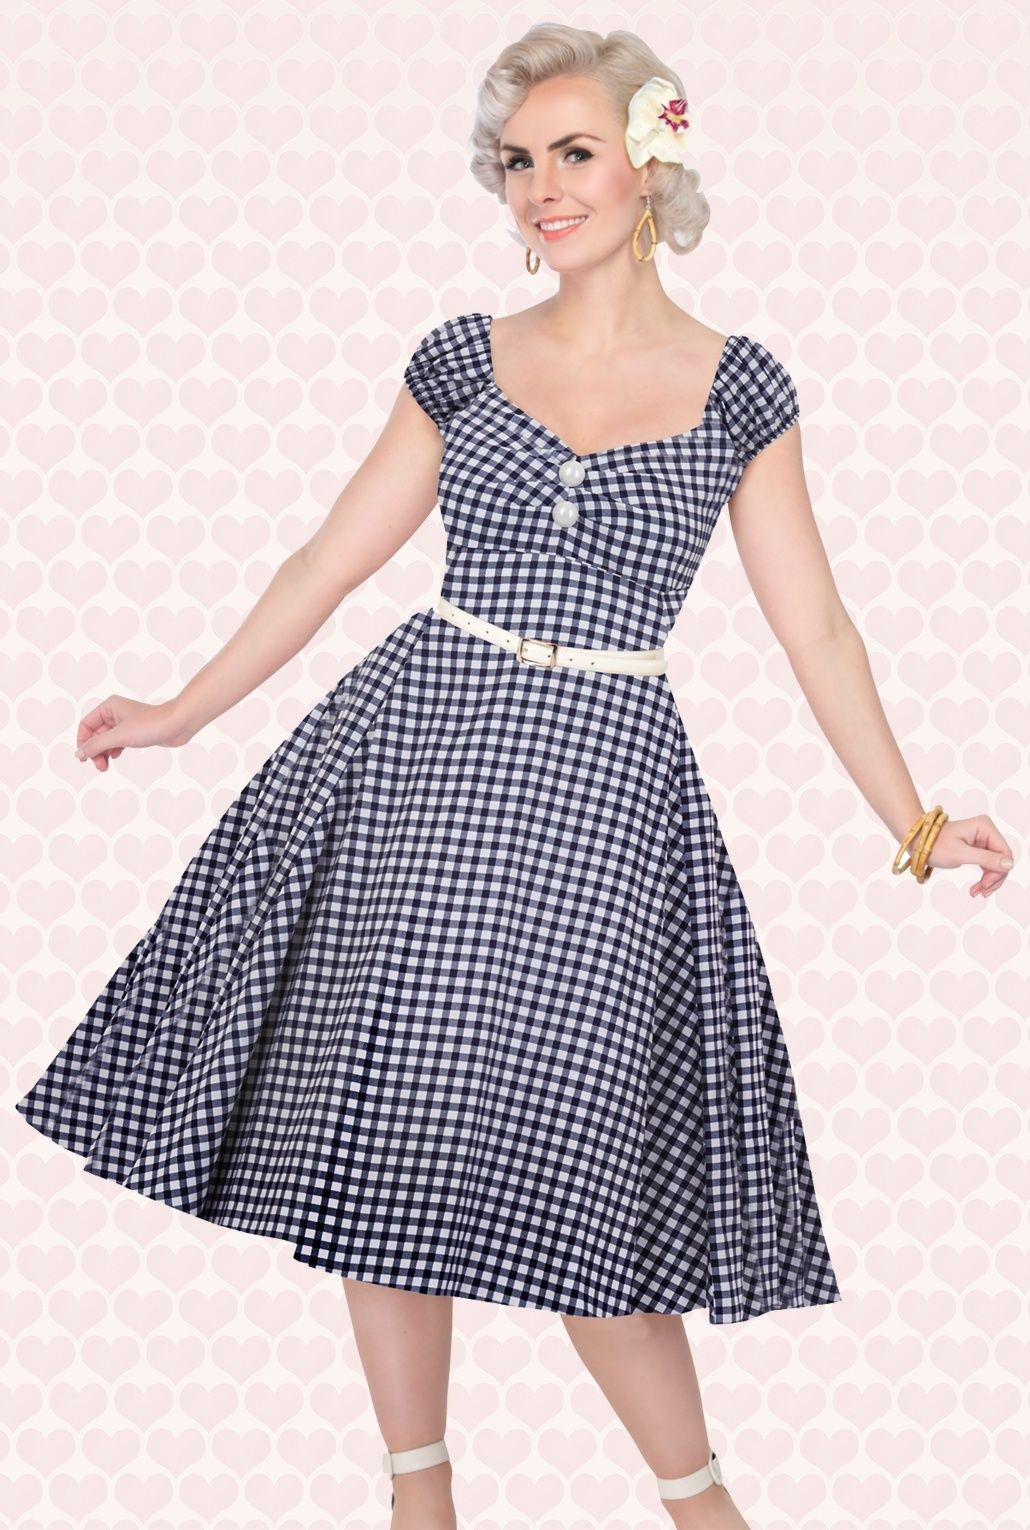 ef6aa9ed135 50s Dolores Doll Gingham Dress in Navy and White | Vintage 1950s ...